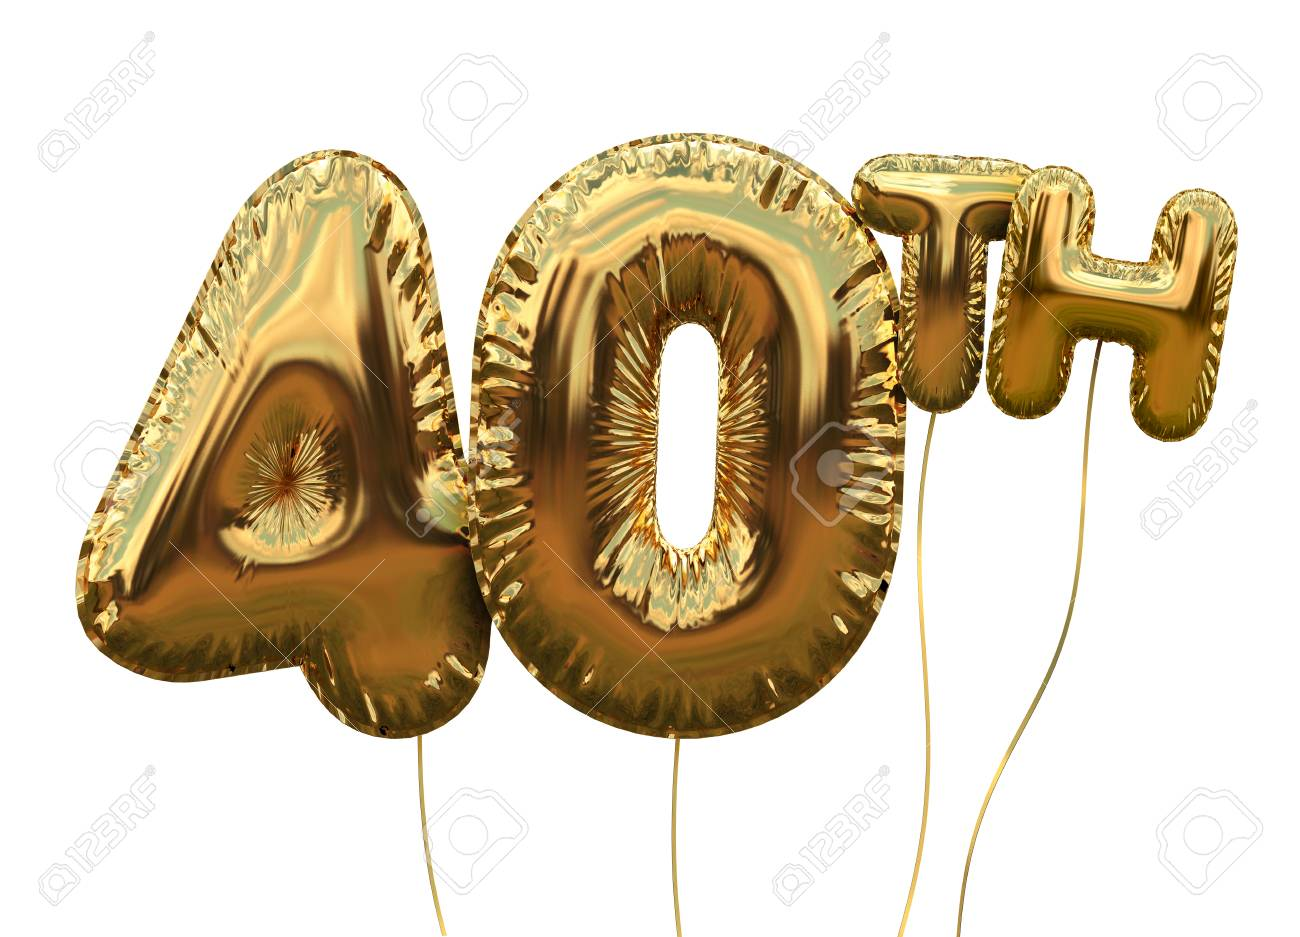 Gold number 40 foil birthday balloon isolated on white. Golden party celebration. 3D Rendering - 93223759